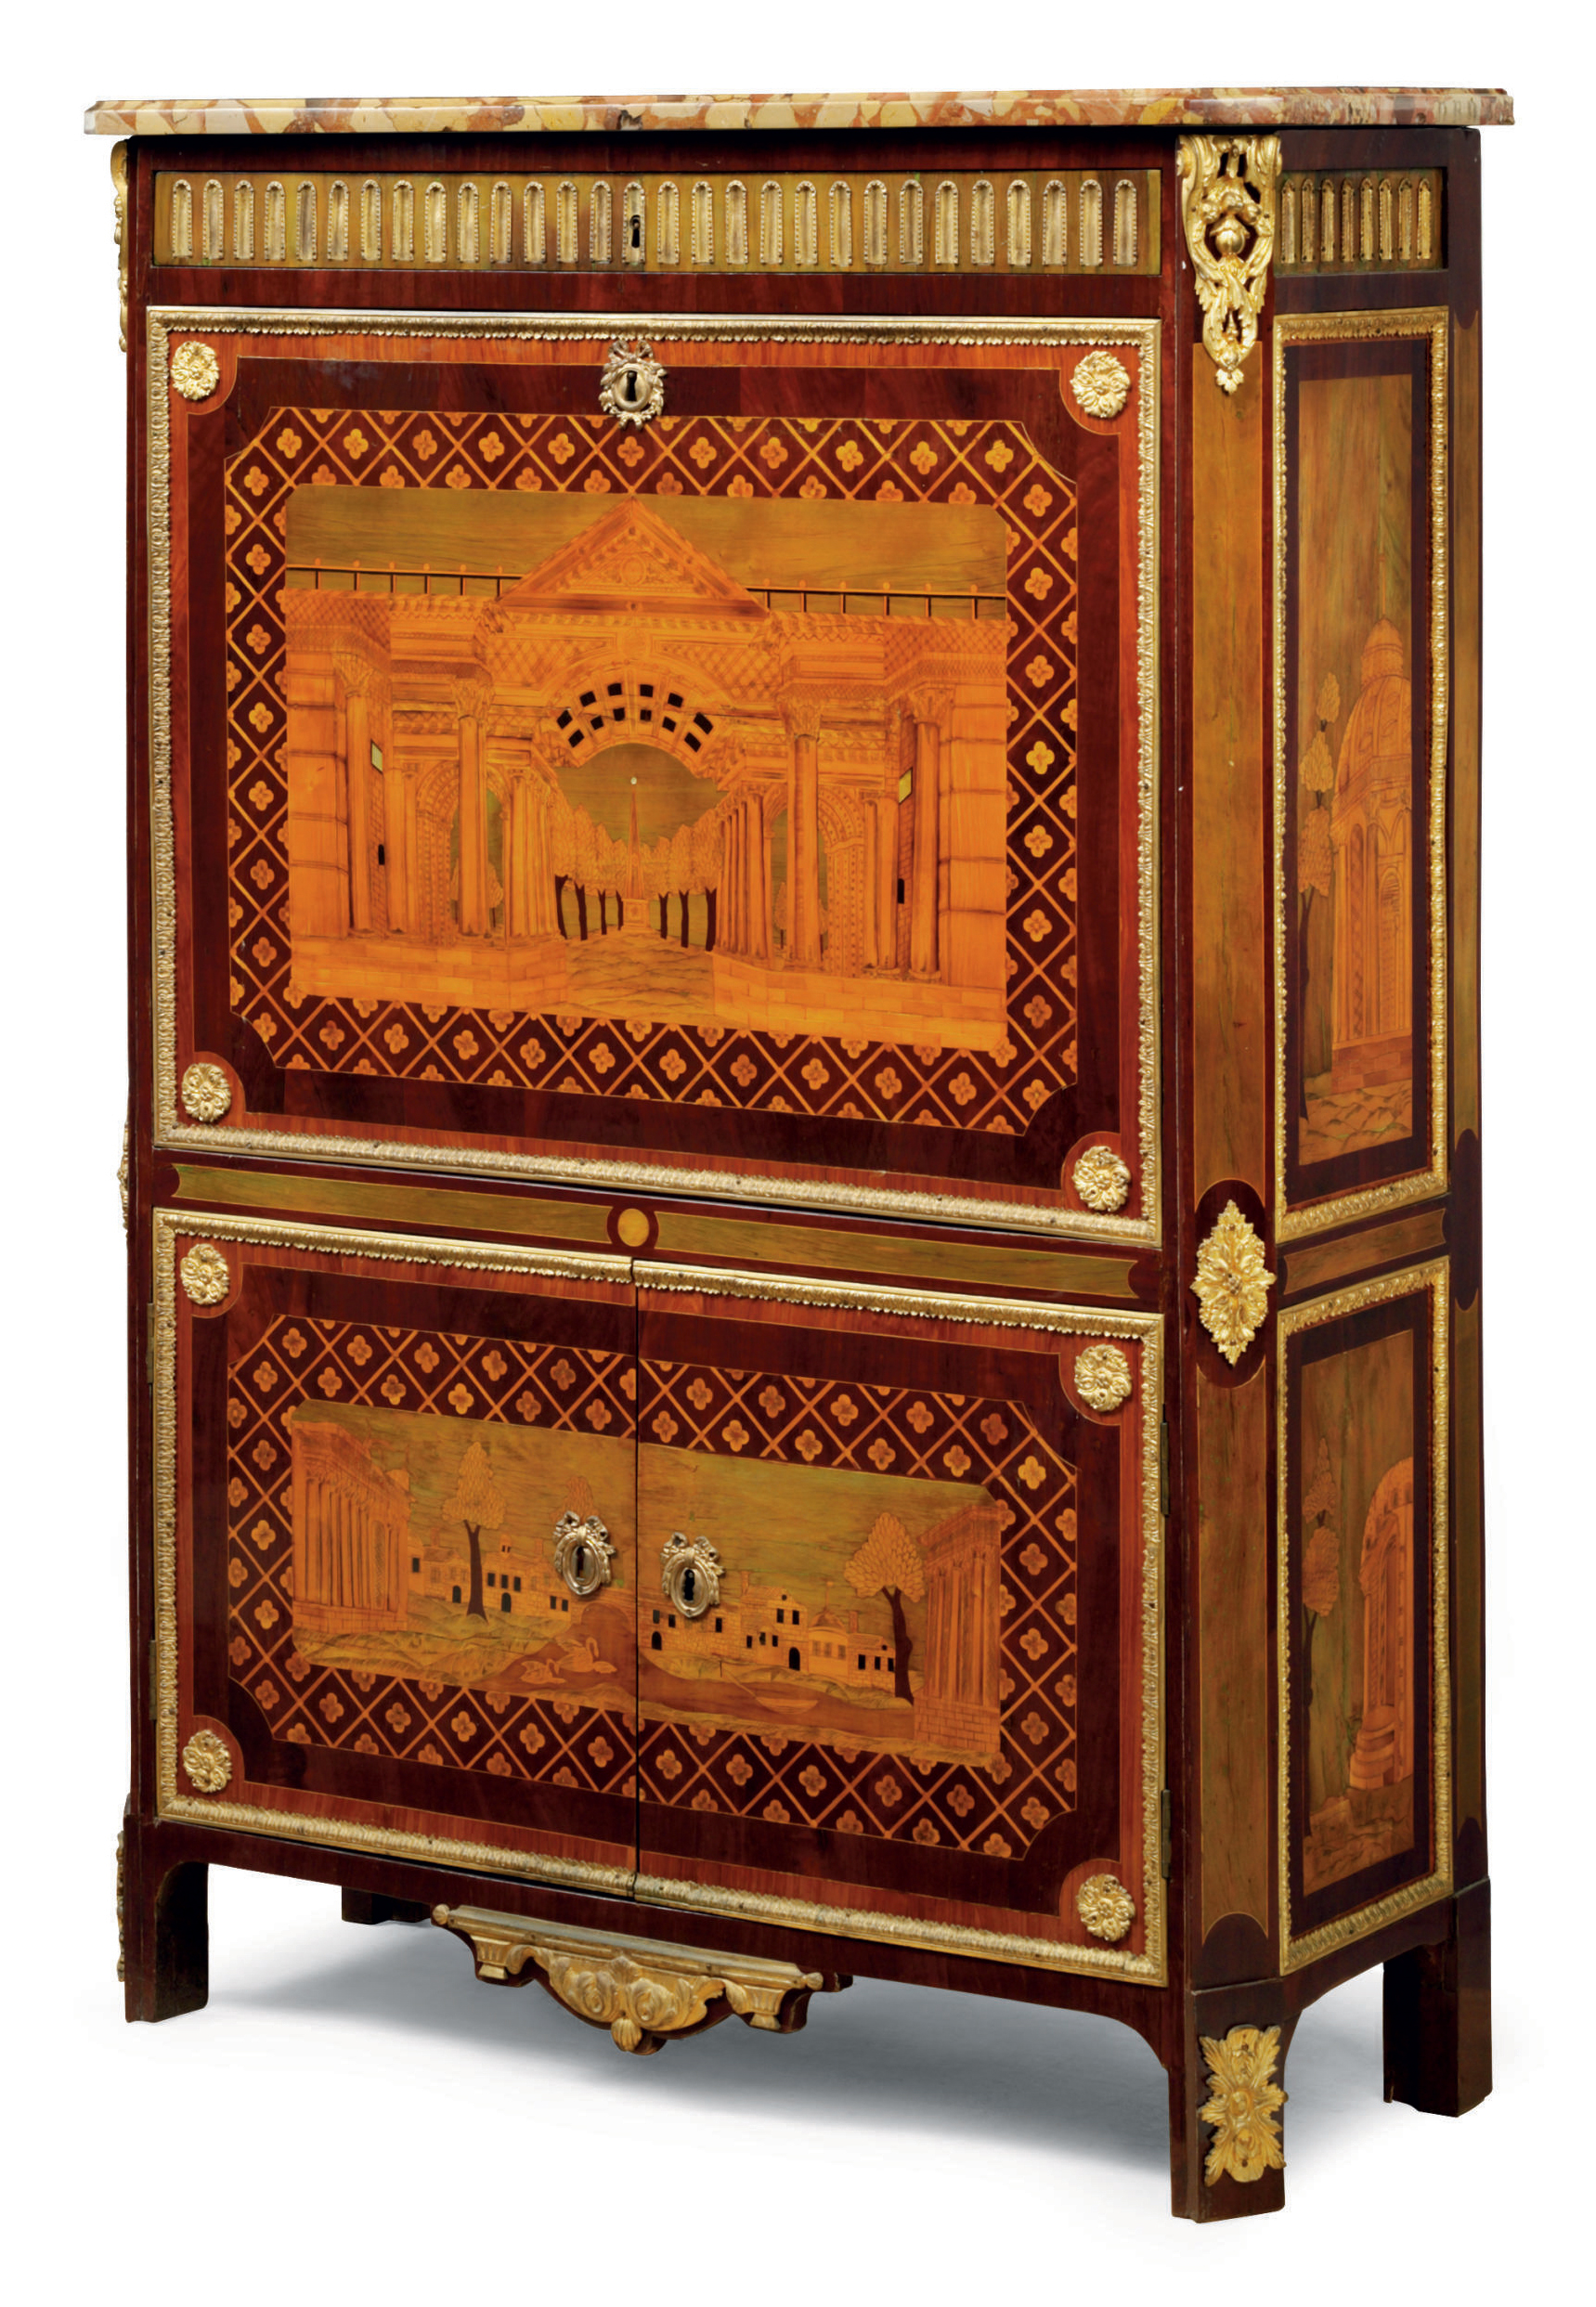 A LOUIS XVI ORMOLU-MOUNTED, MOTHER OF PEARL, AMARANTH, TULIPWOOD, AND MARQUETRY SECRETAIRE A ABATTANT